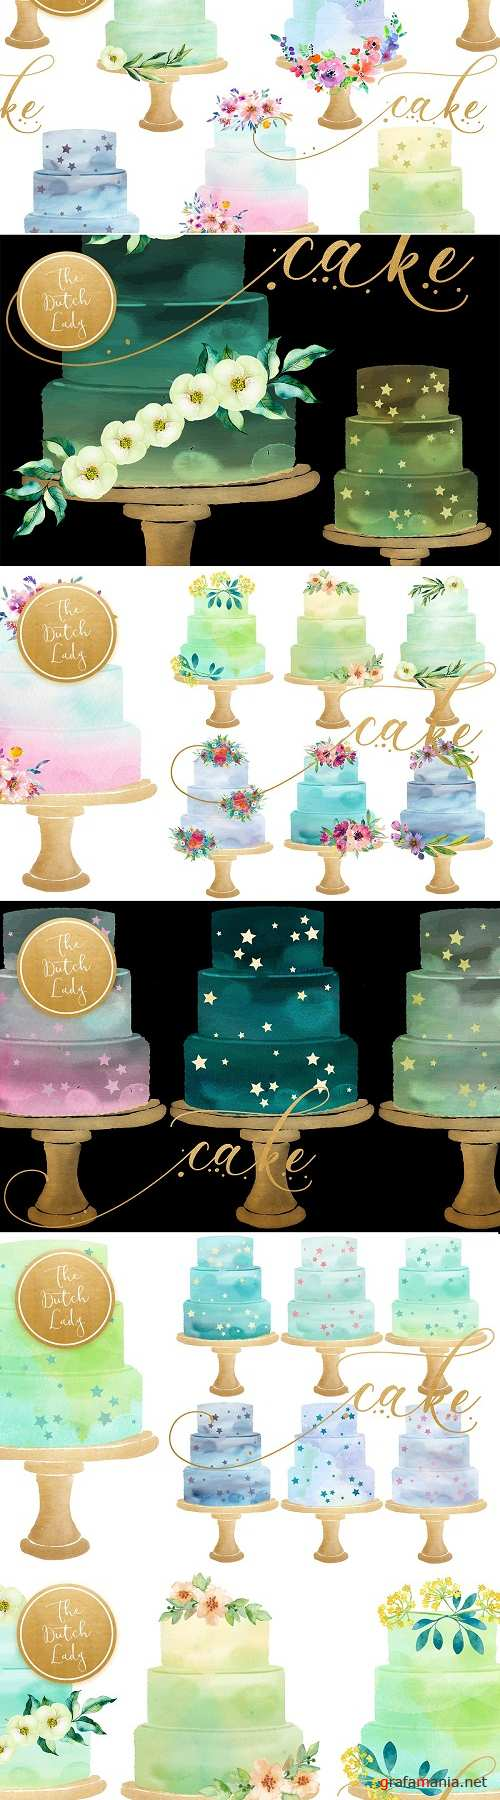 Watercolor Layered Cake Clipart - 2816518